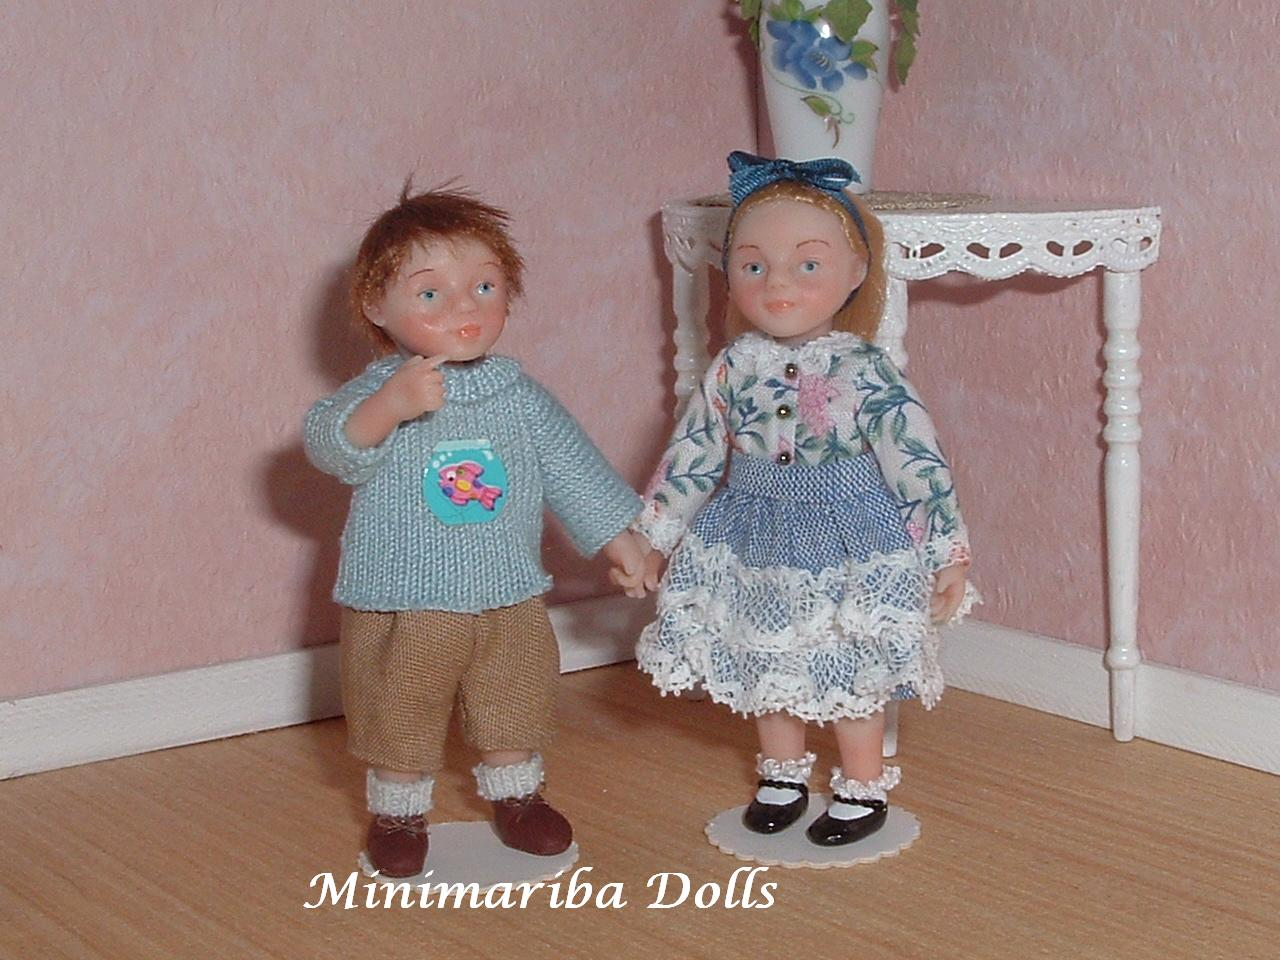 CDHM Artisan Mariarita Baldan of Minimariba Dolls creates 1:12 hand sculpted polymer clay dolls, dressed and wigged, painted details for dollhouse minaitures, including child posed dolls